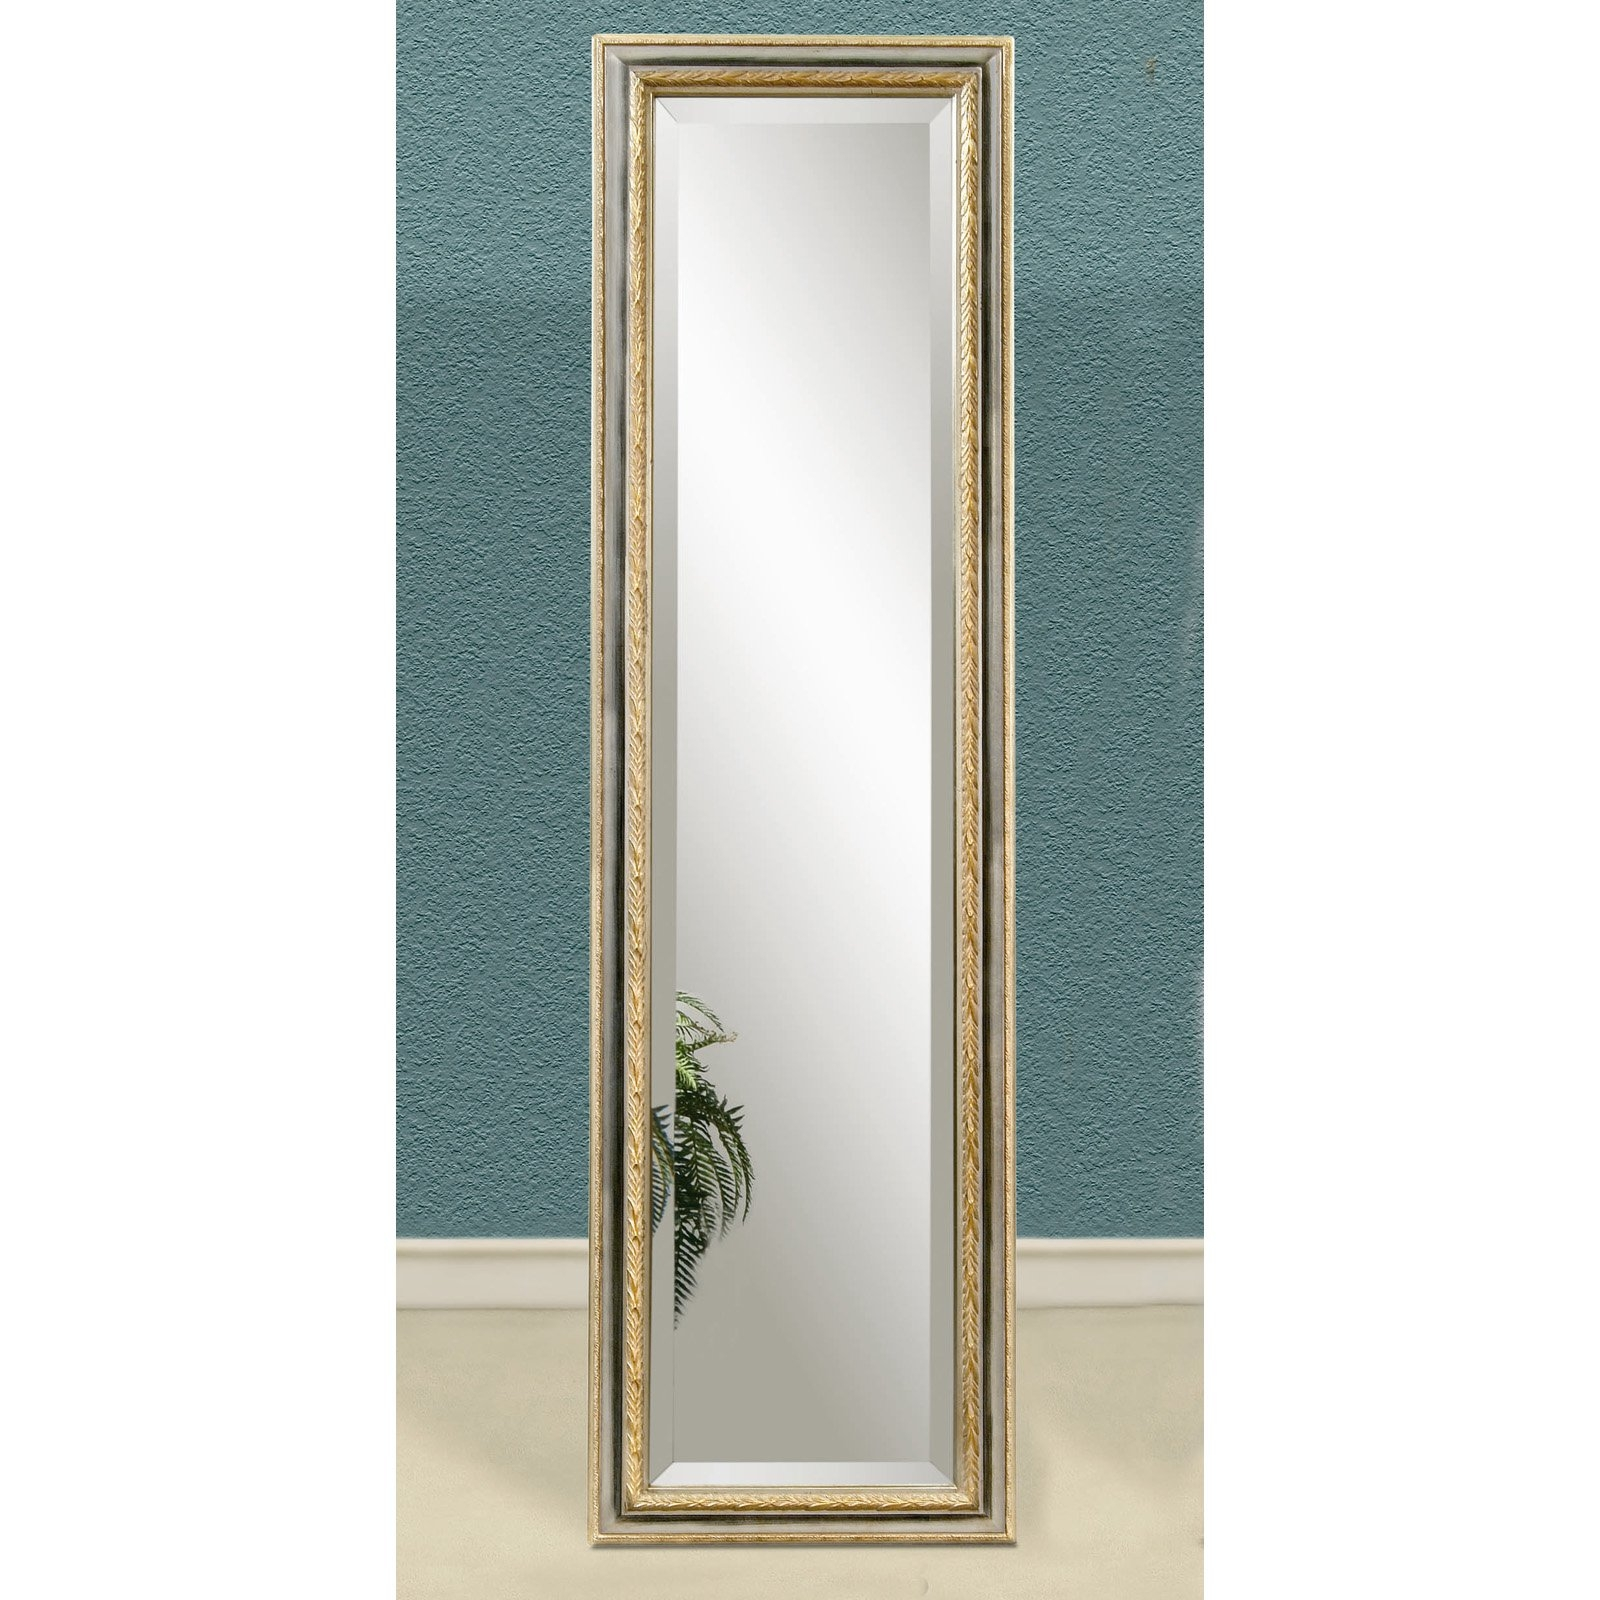 Silver Gold Full Length Cheval Floor Mirror 18w X 64h In Regarding Gold Standing Mirror (View 6 of 15)